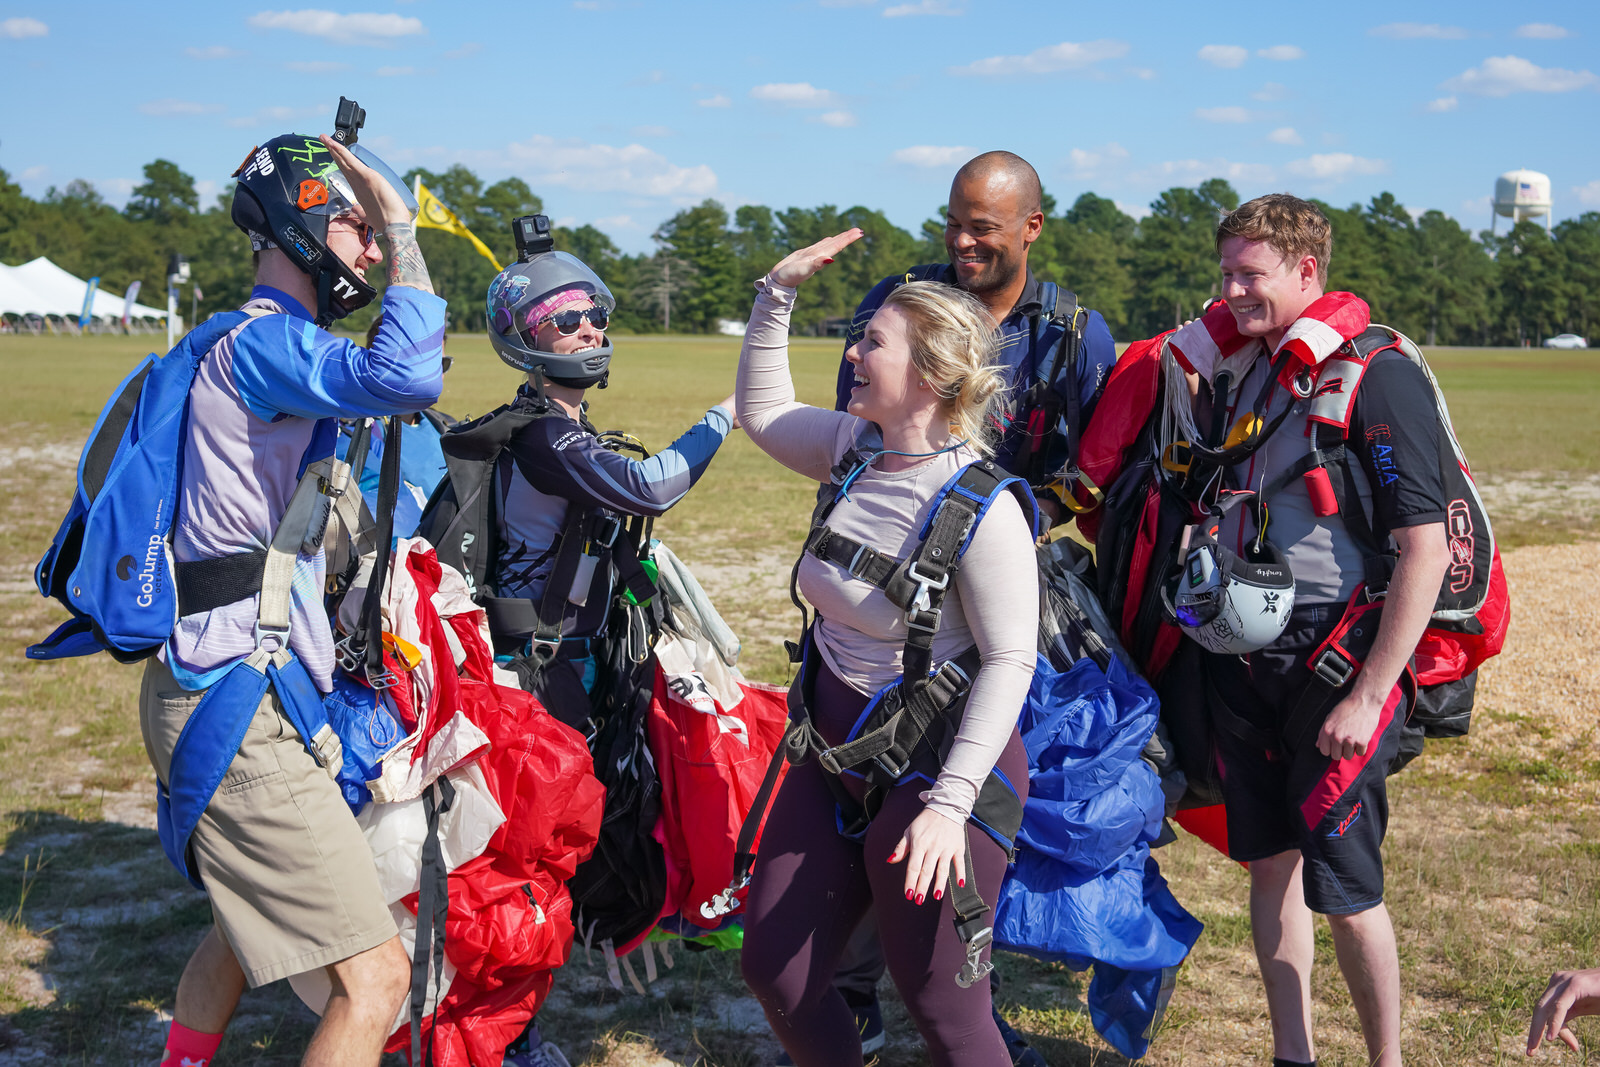 skydive with friends